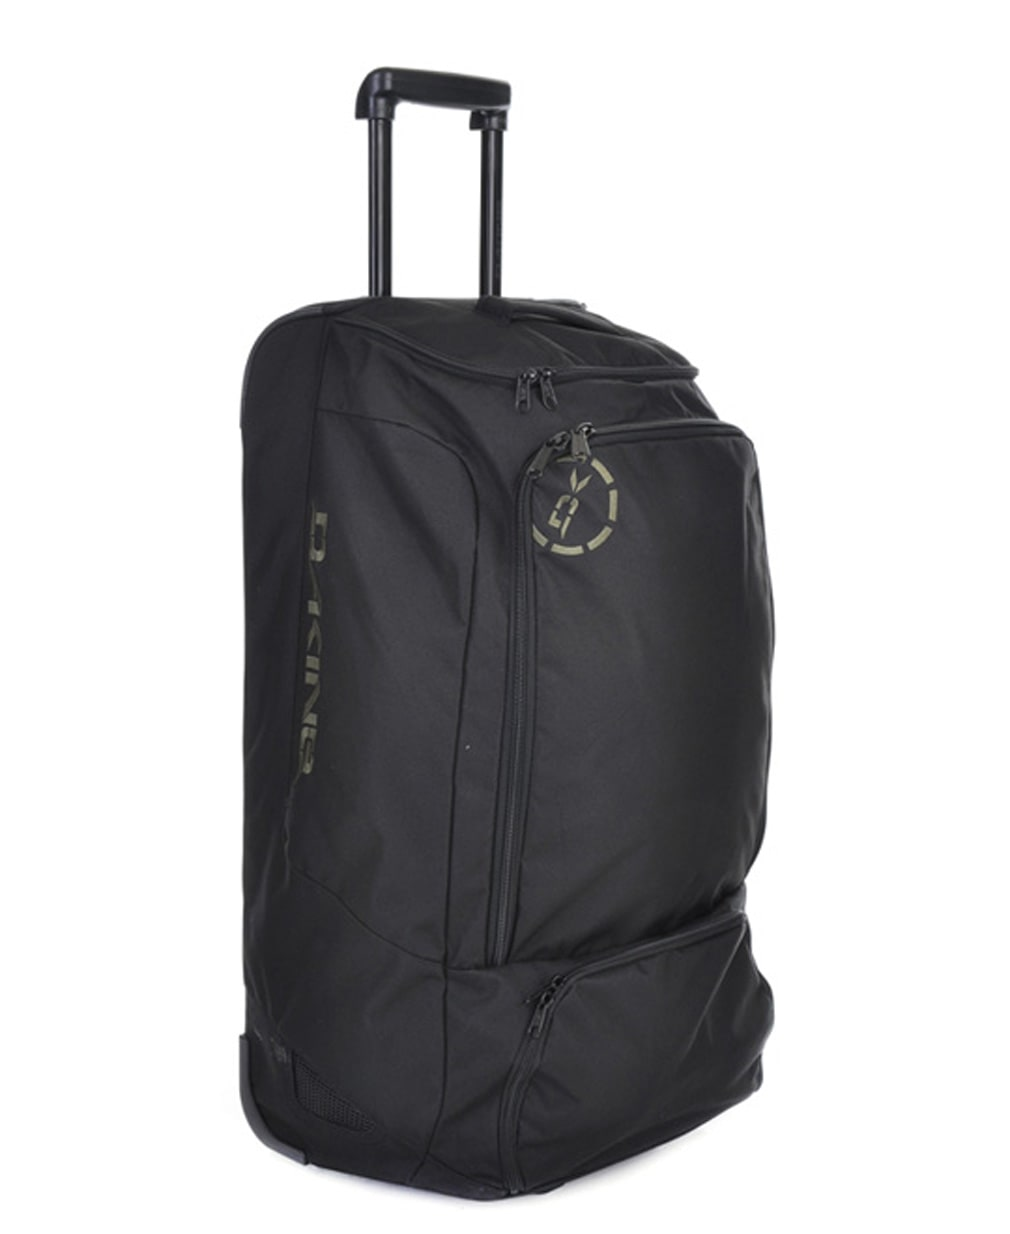 Shop for Dakine Ez Traveler 120 Travel Bag Black - Men's